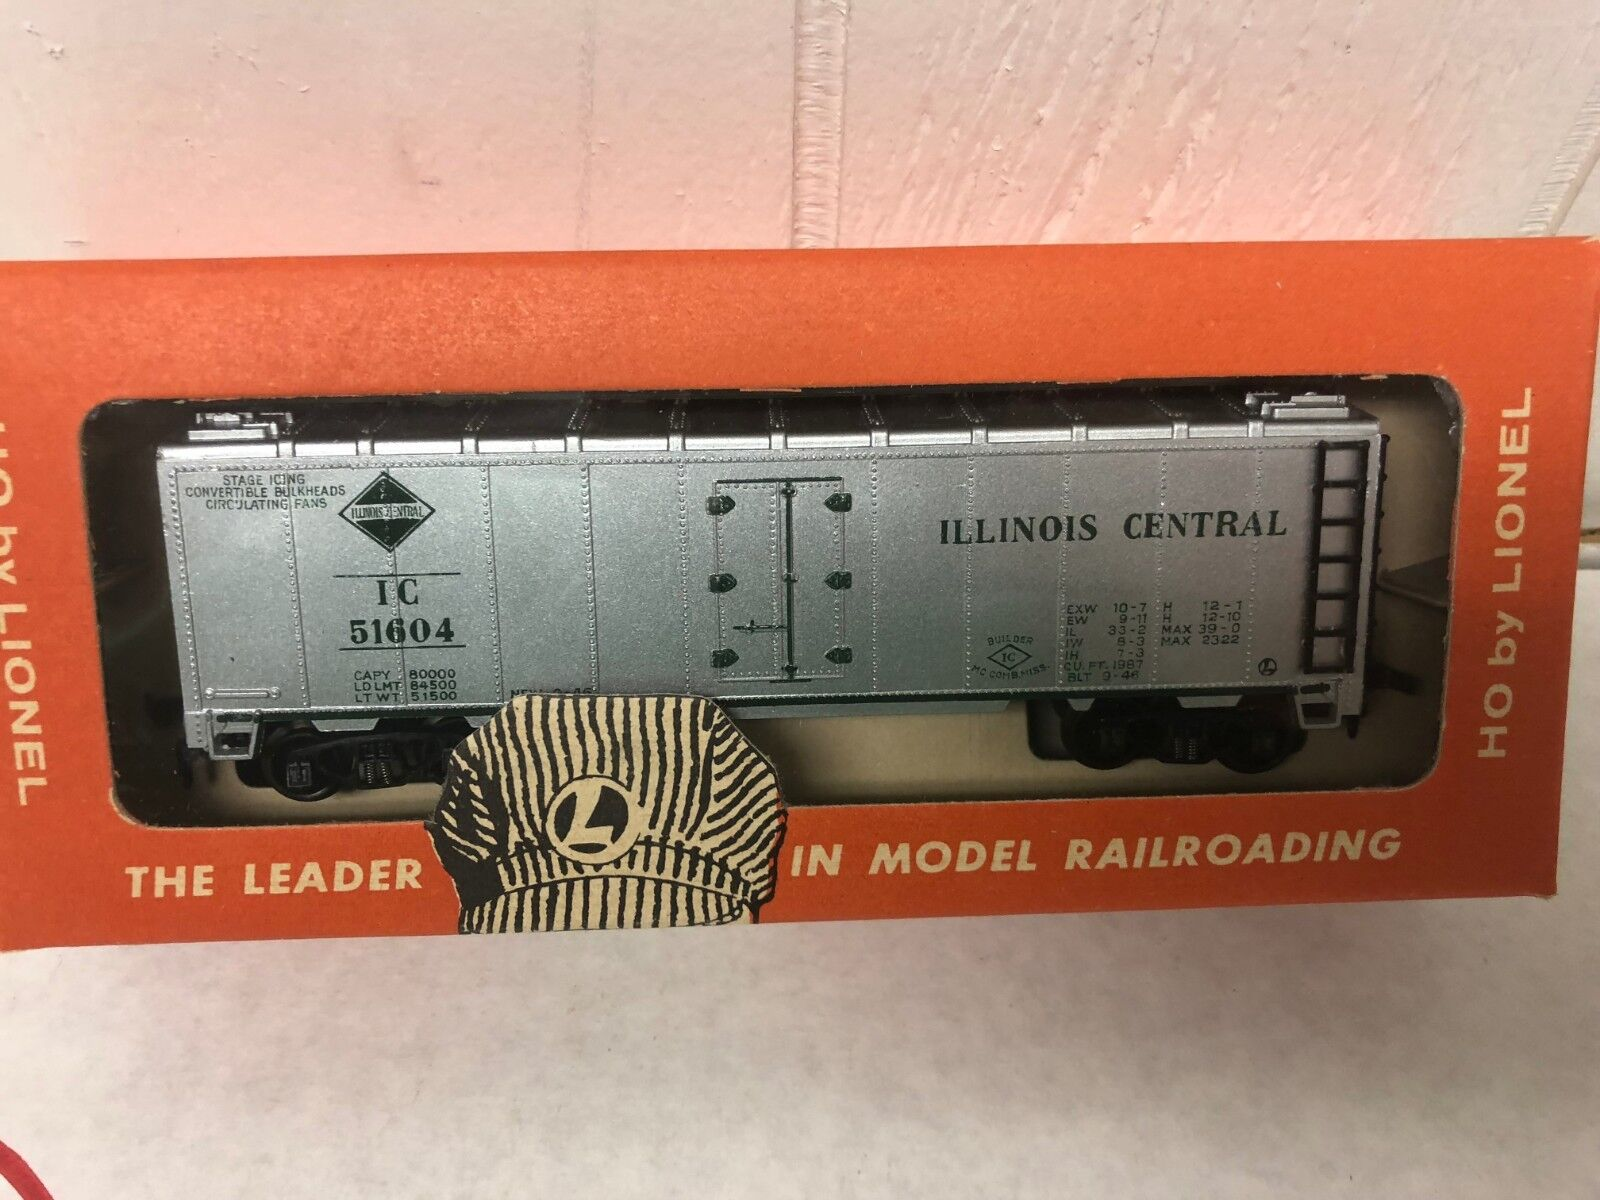 Lionel HO Scale Train Car 0872-25 Illinois Central Reefer Vintage Original Box